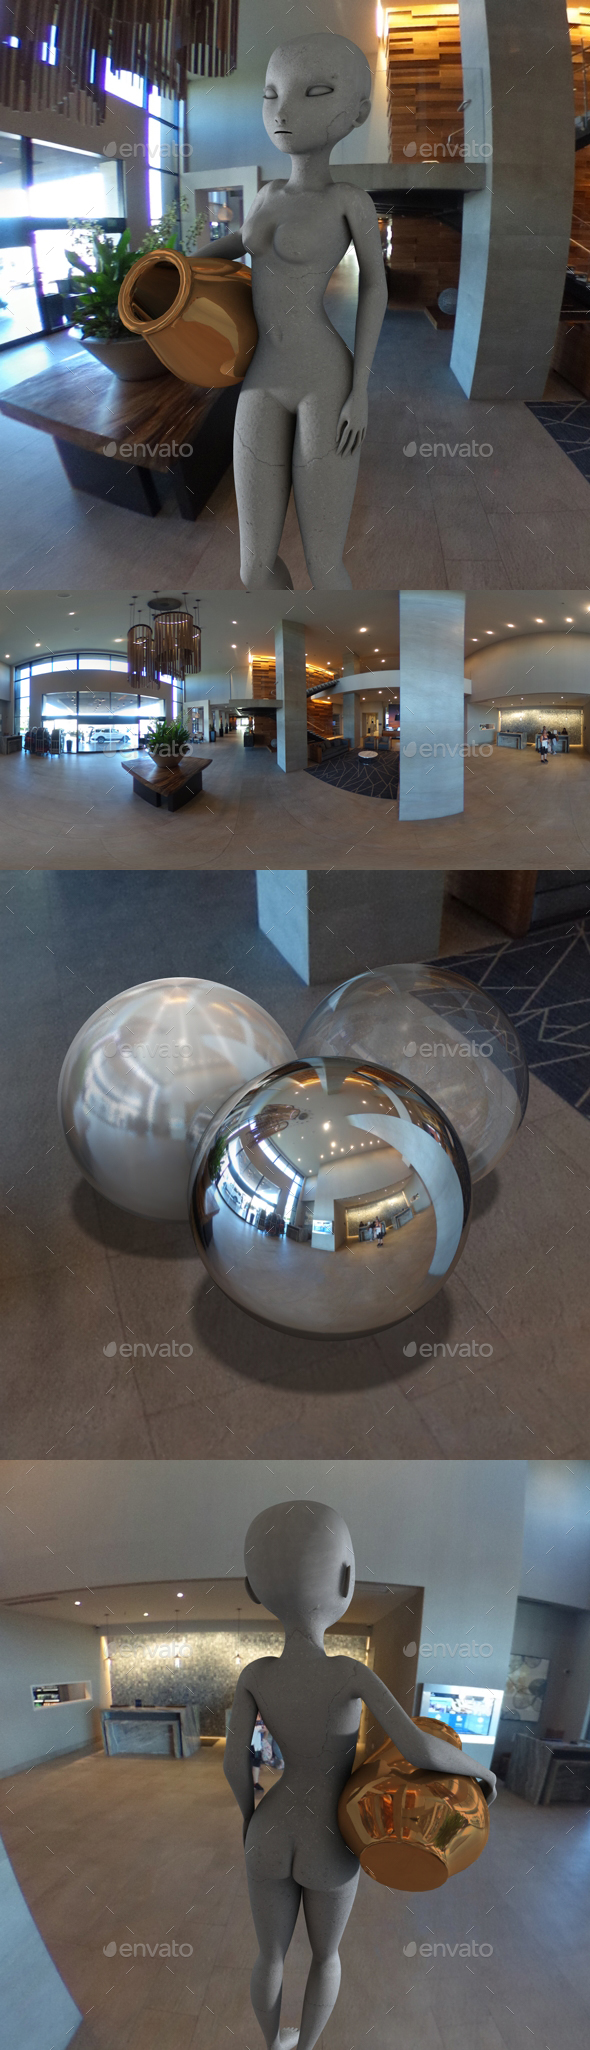 Modern Hotel Lobby HDRI - 3DOcean Item for Sale